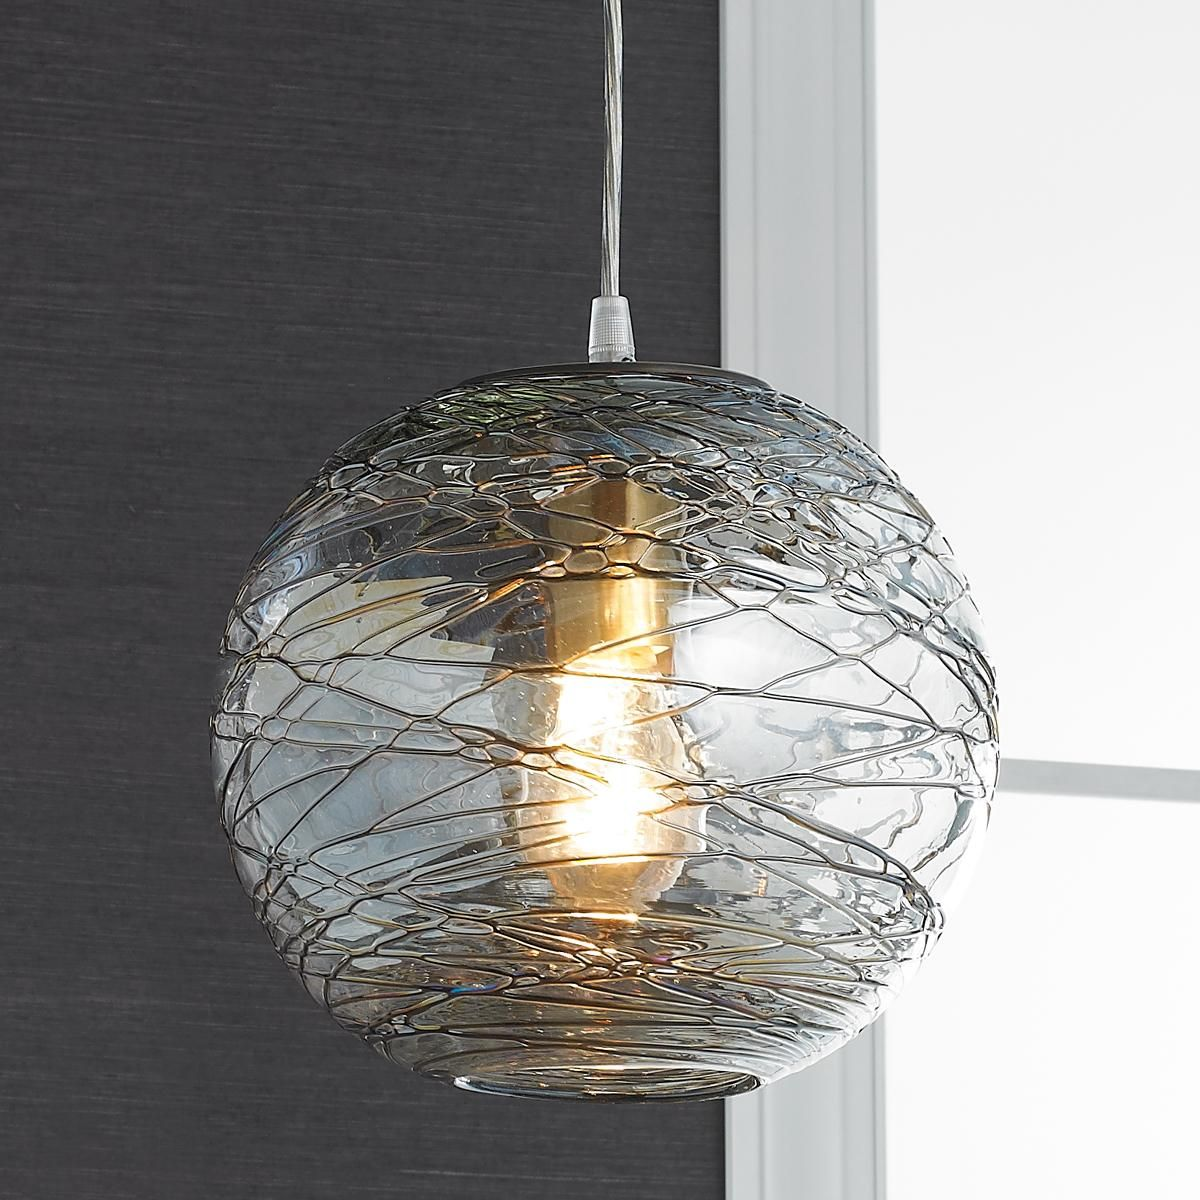 Luna Rod Pendant With 10 Clear Shade Pendant Fixture Globe Pendant Light Pendant Lighting